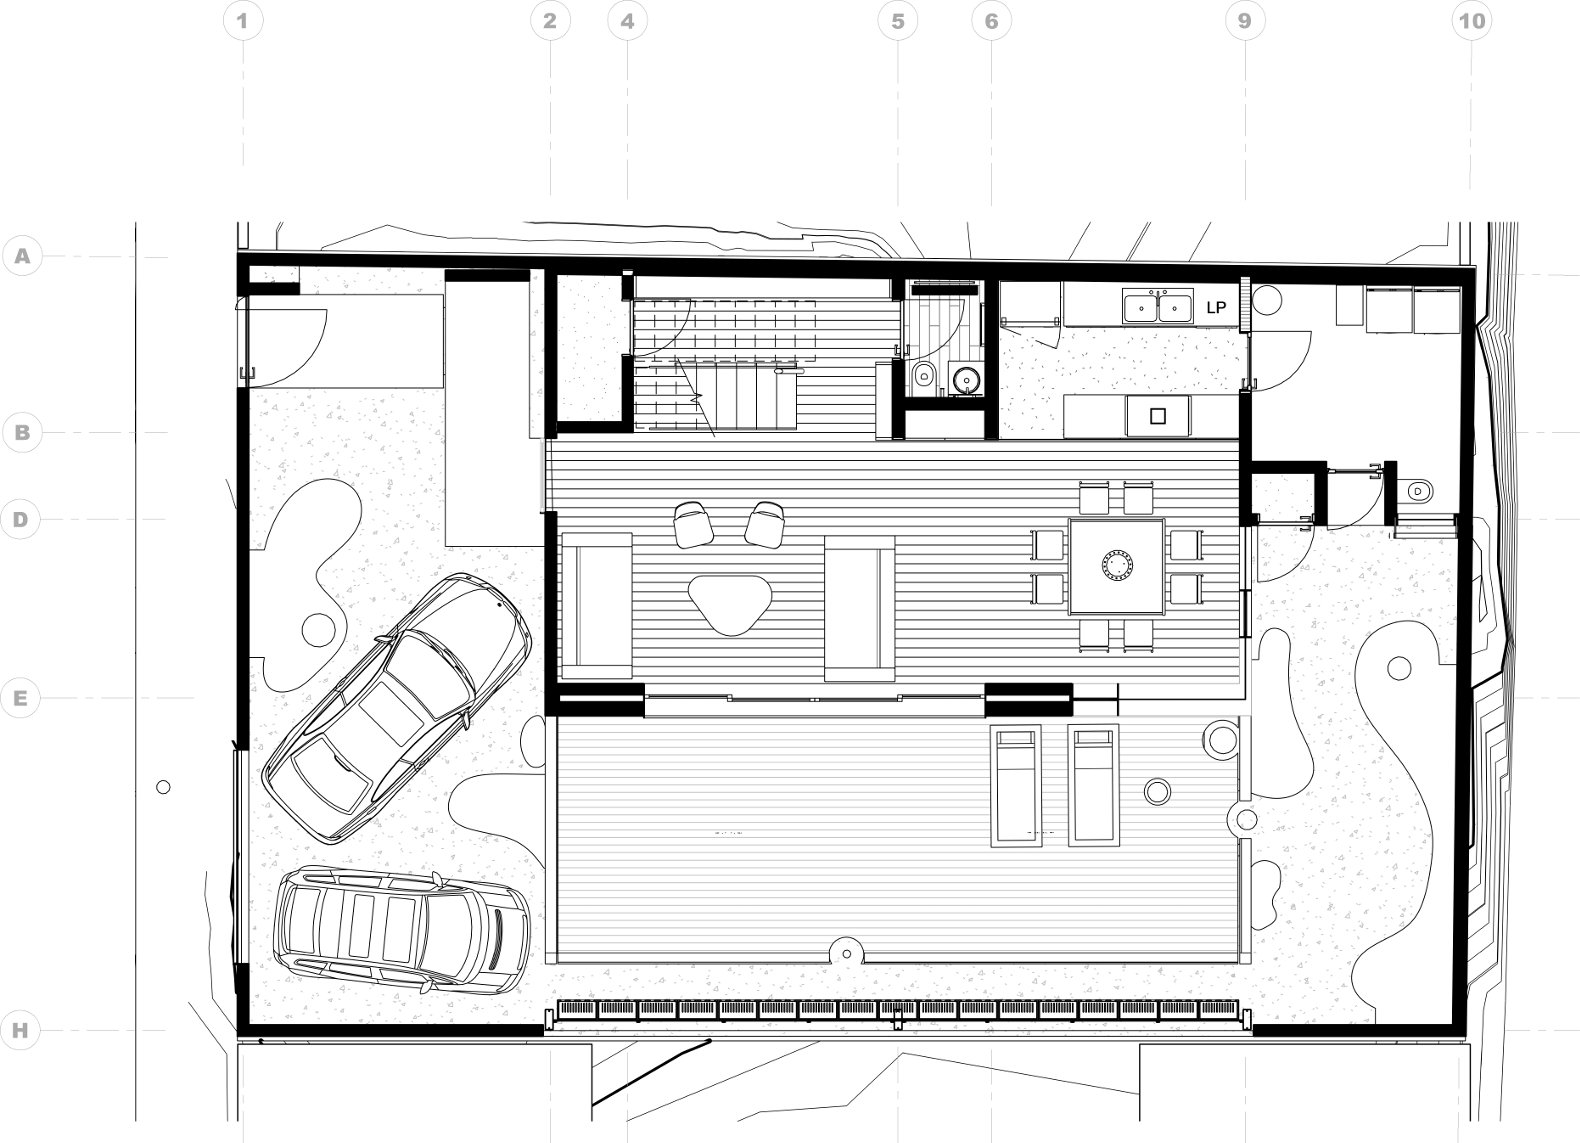 Paul Cremoux Casa Nirau floorplan 1?resize\=665%2C481\&ssl\=1 princecraft wiring diagram wiring diagram shrutiradio 2004 princecraft speedometer wiring diagram at nearapp.co